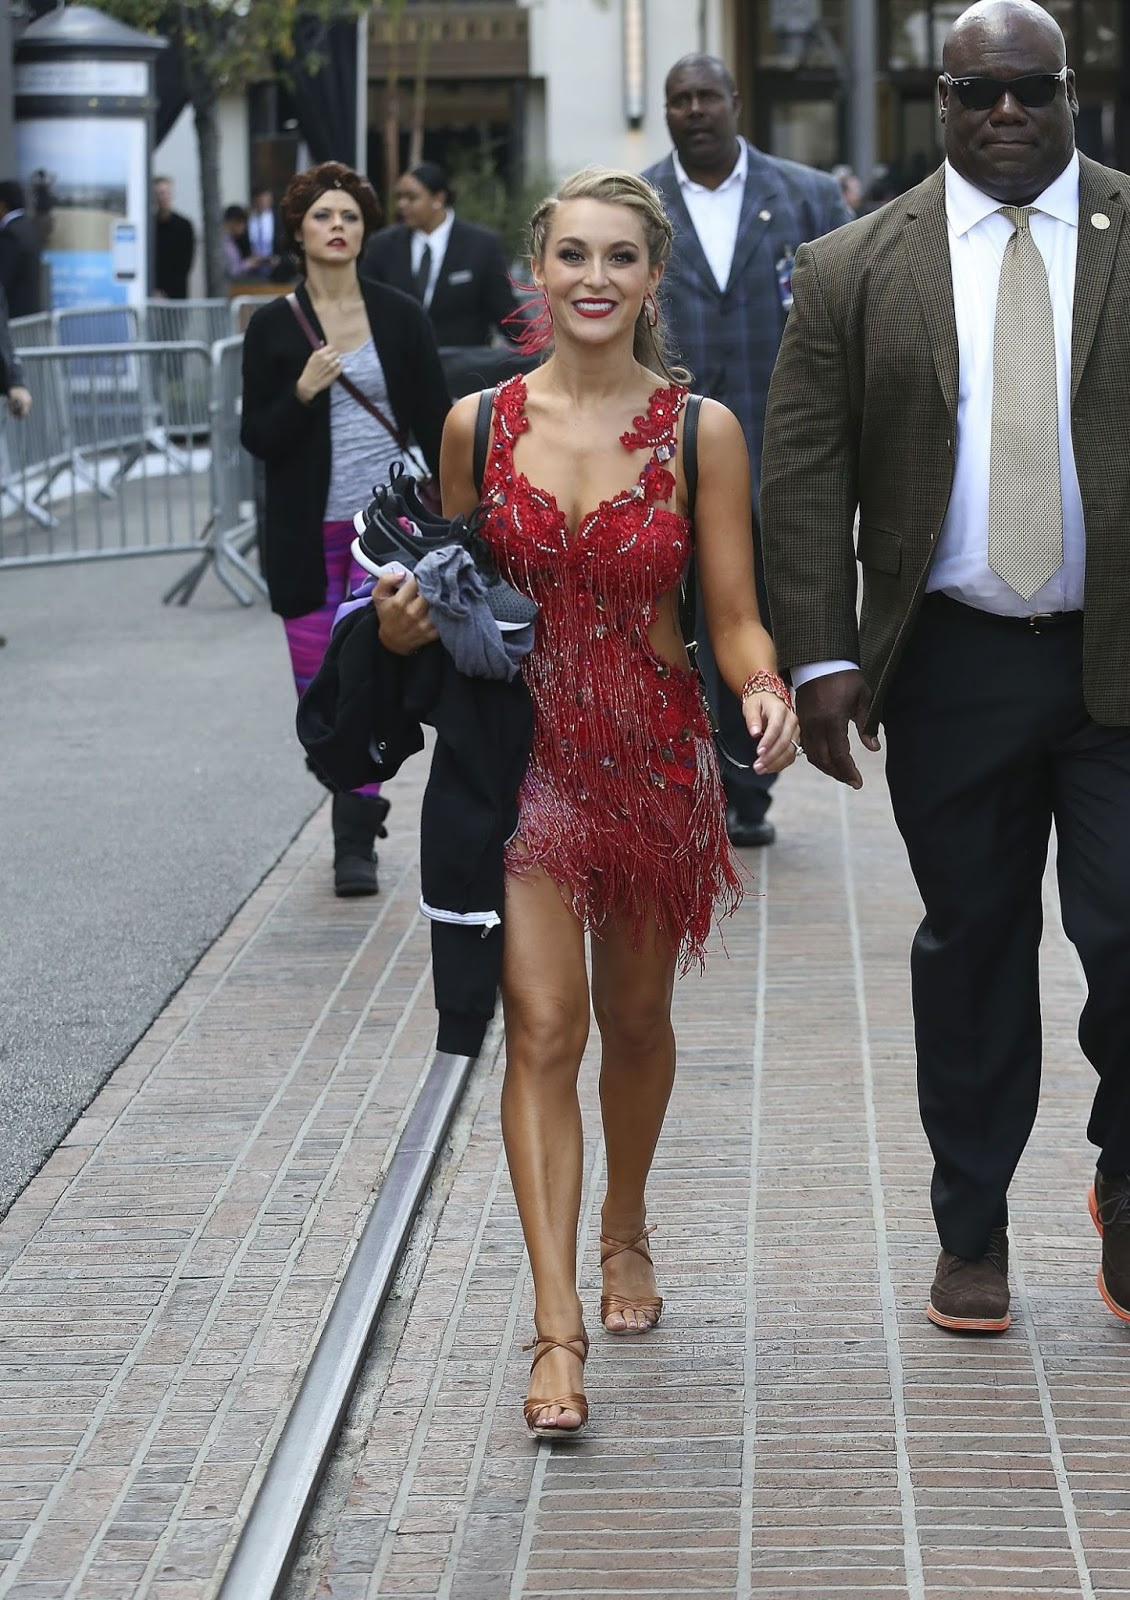 Alexa PenaVega Shooting Dancing in Hollywood - Photo Alexa PenaVega 2015